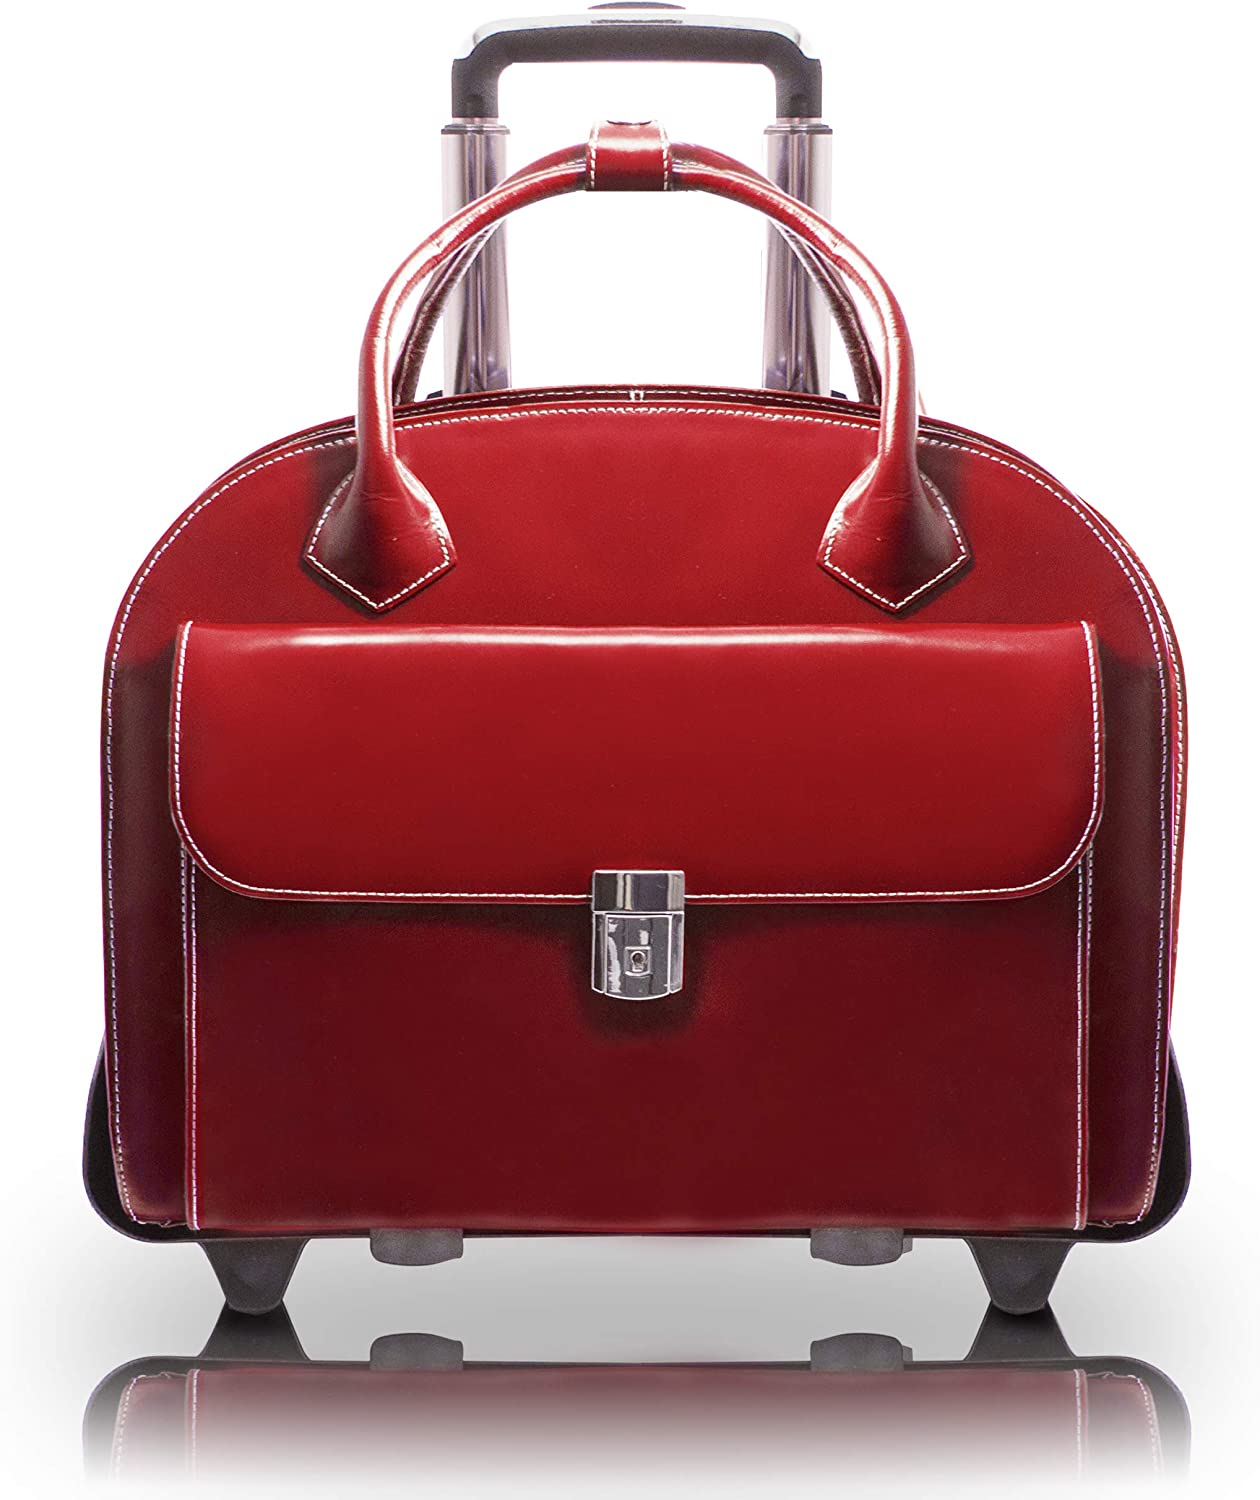 """McKleinUSA W Series, Glen Ellyn, Top Grain Cowhide Leather, 15"""" Leather Patented Detachable -Wheeled Ladies' Laptop Briefcase, Red (94366), One Size"""